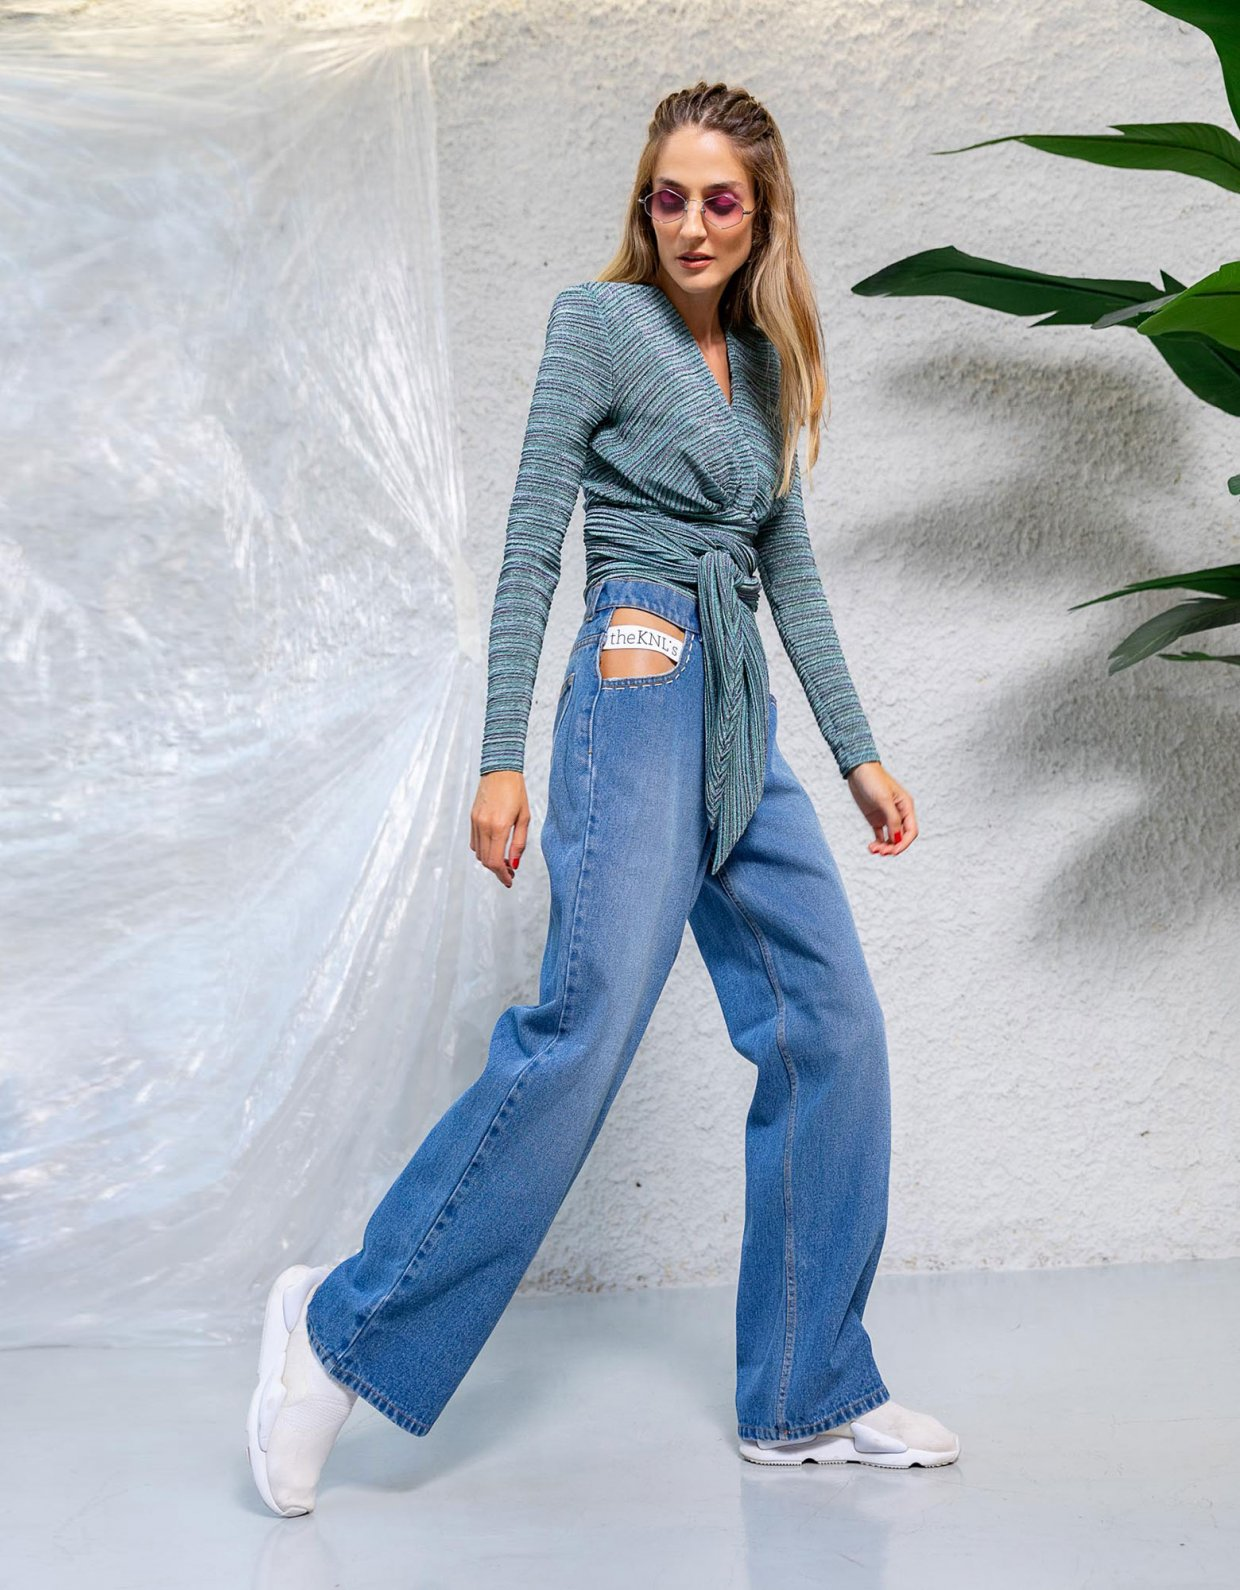 The Knl's Outburst blue wash jeans